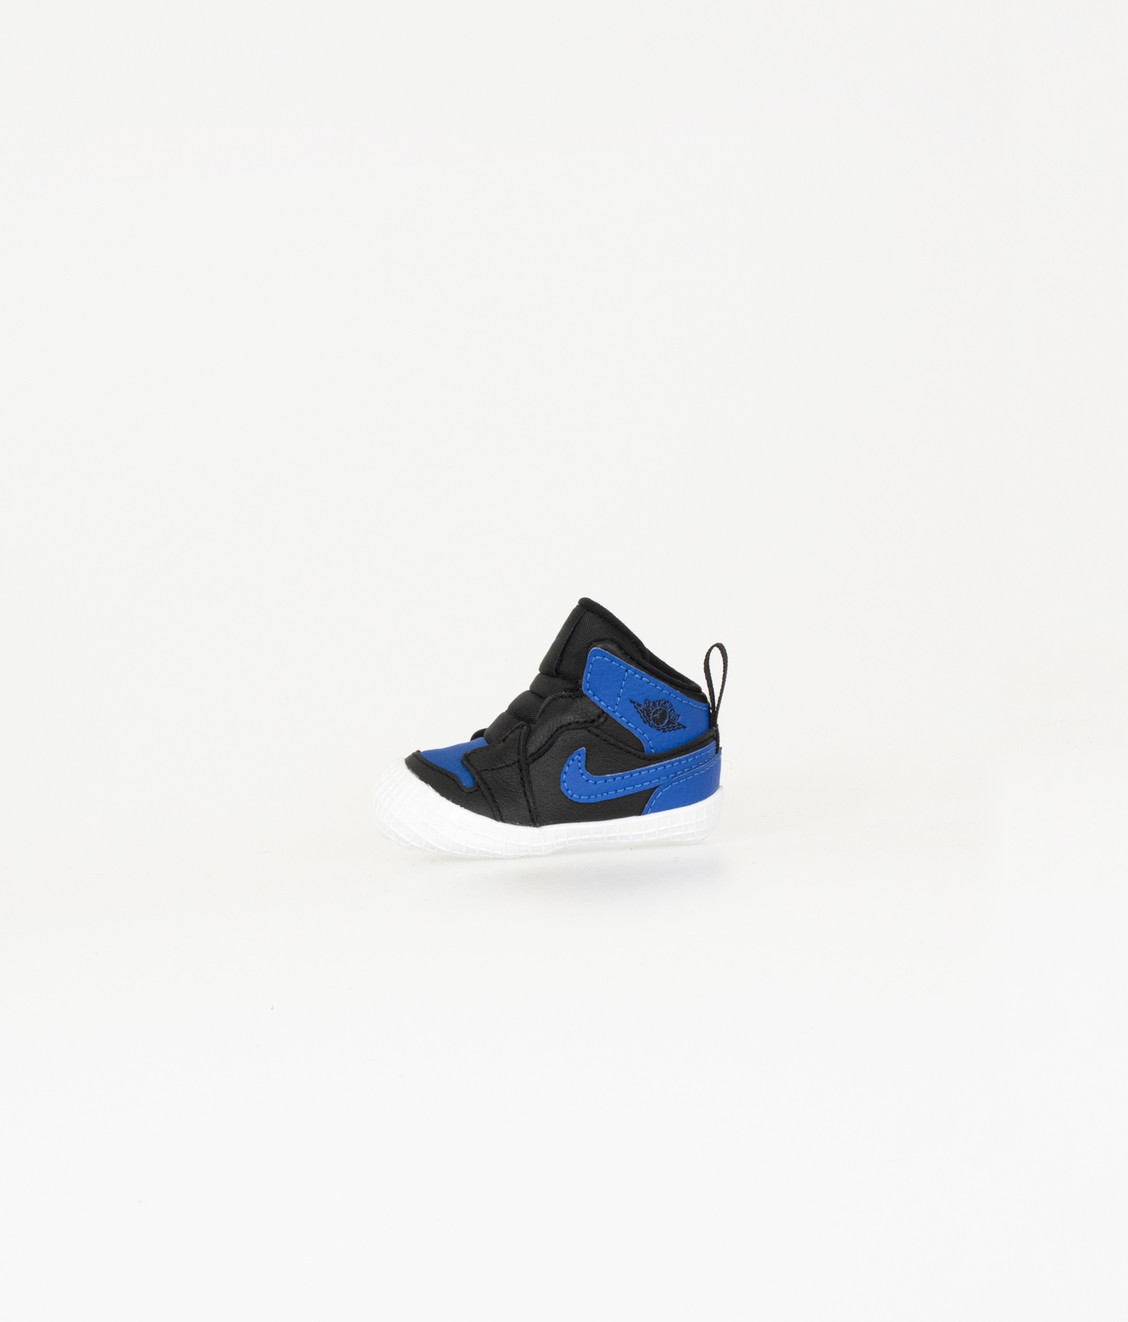 Nike Jordan 1 Black Varsity Royal Crib Bootie